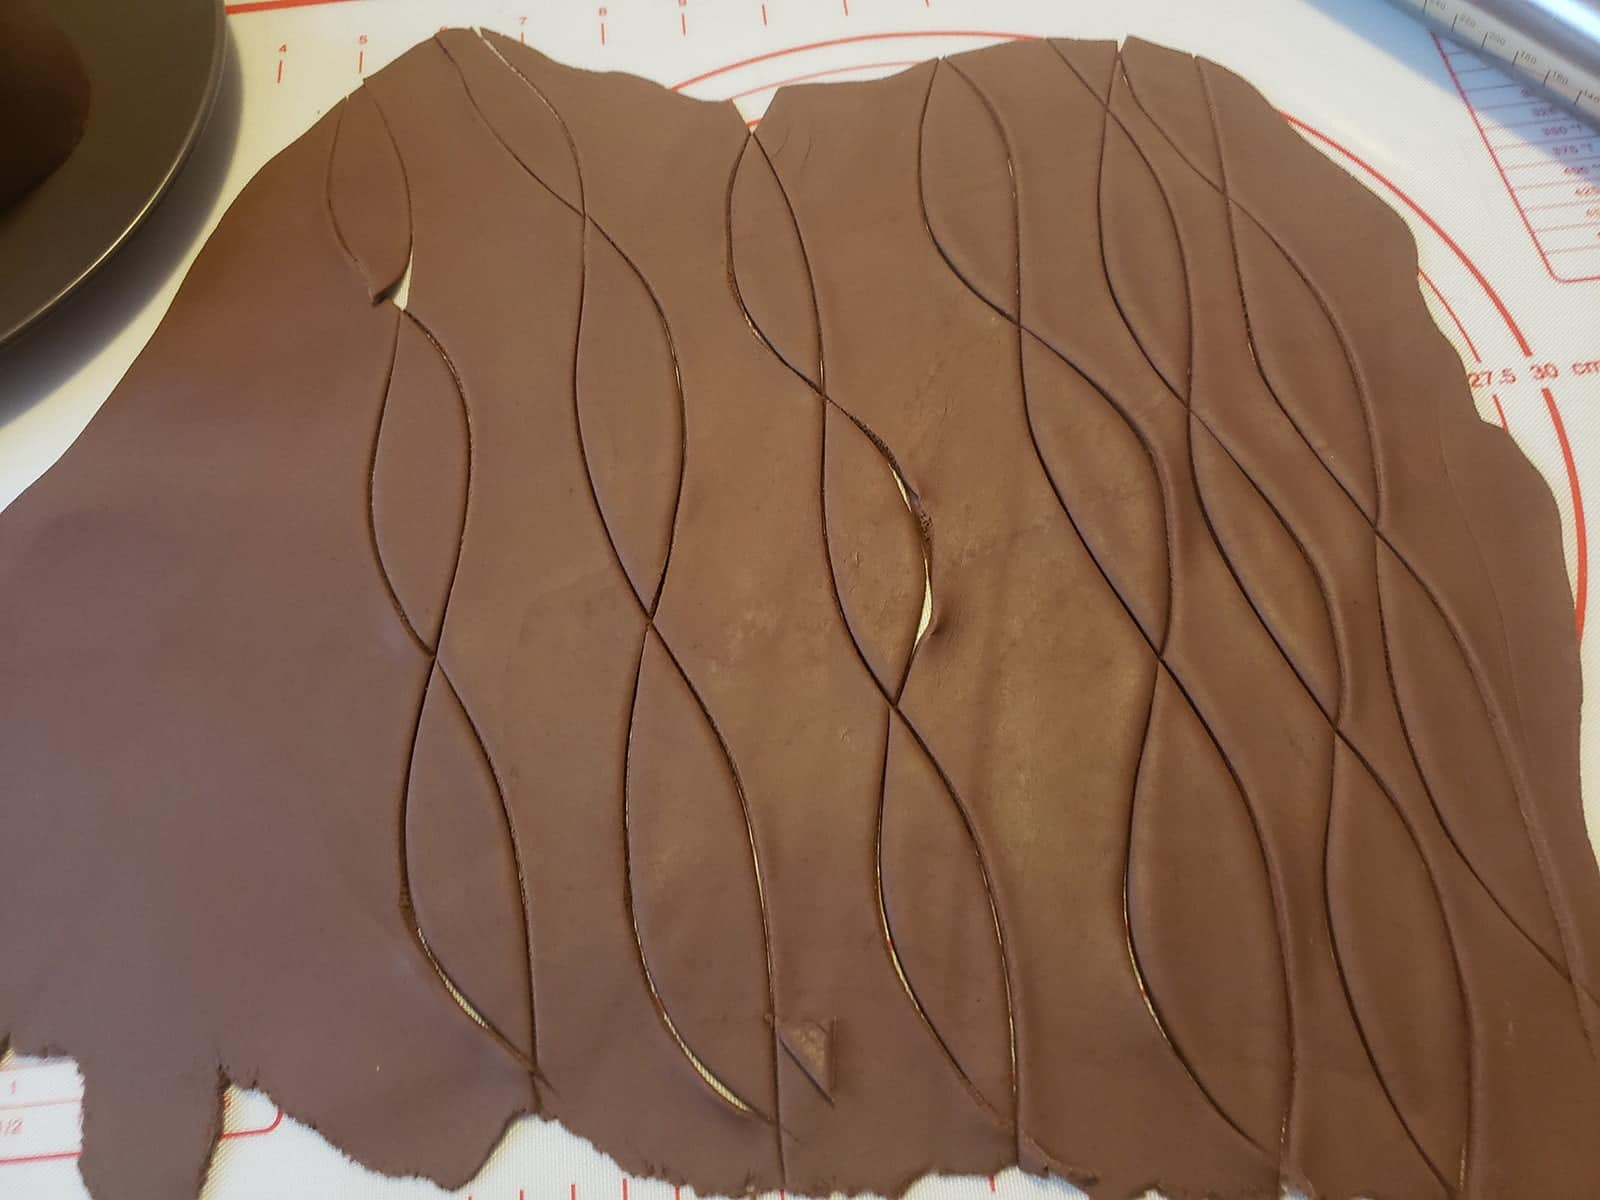 A rolled out piece of chocolate fondant, with leaf shapes cut from it.